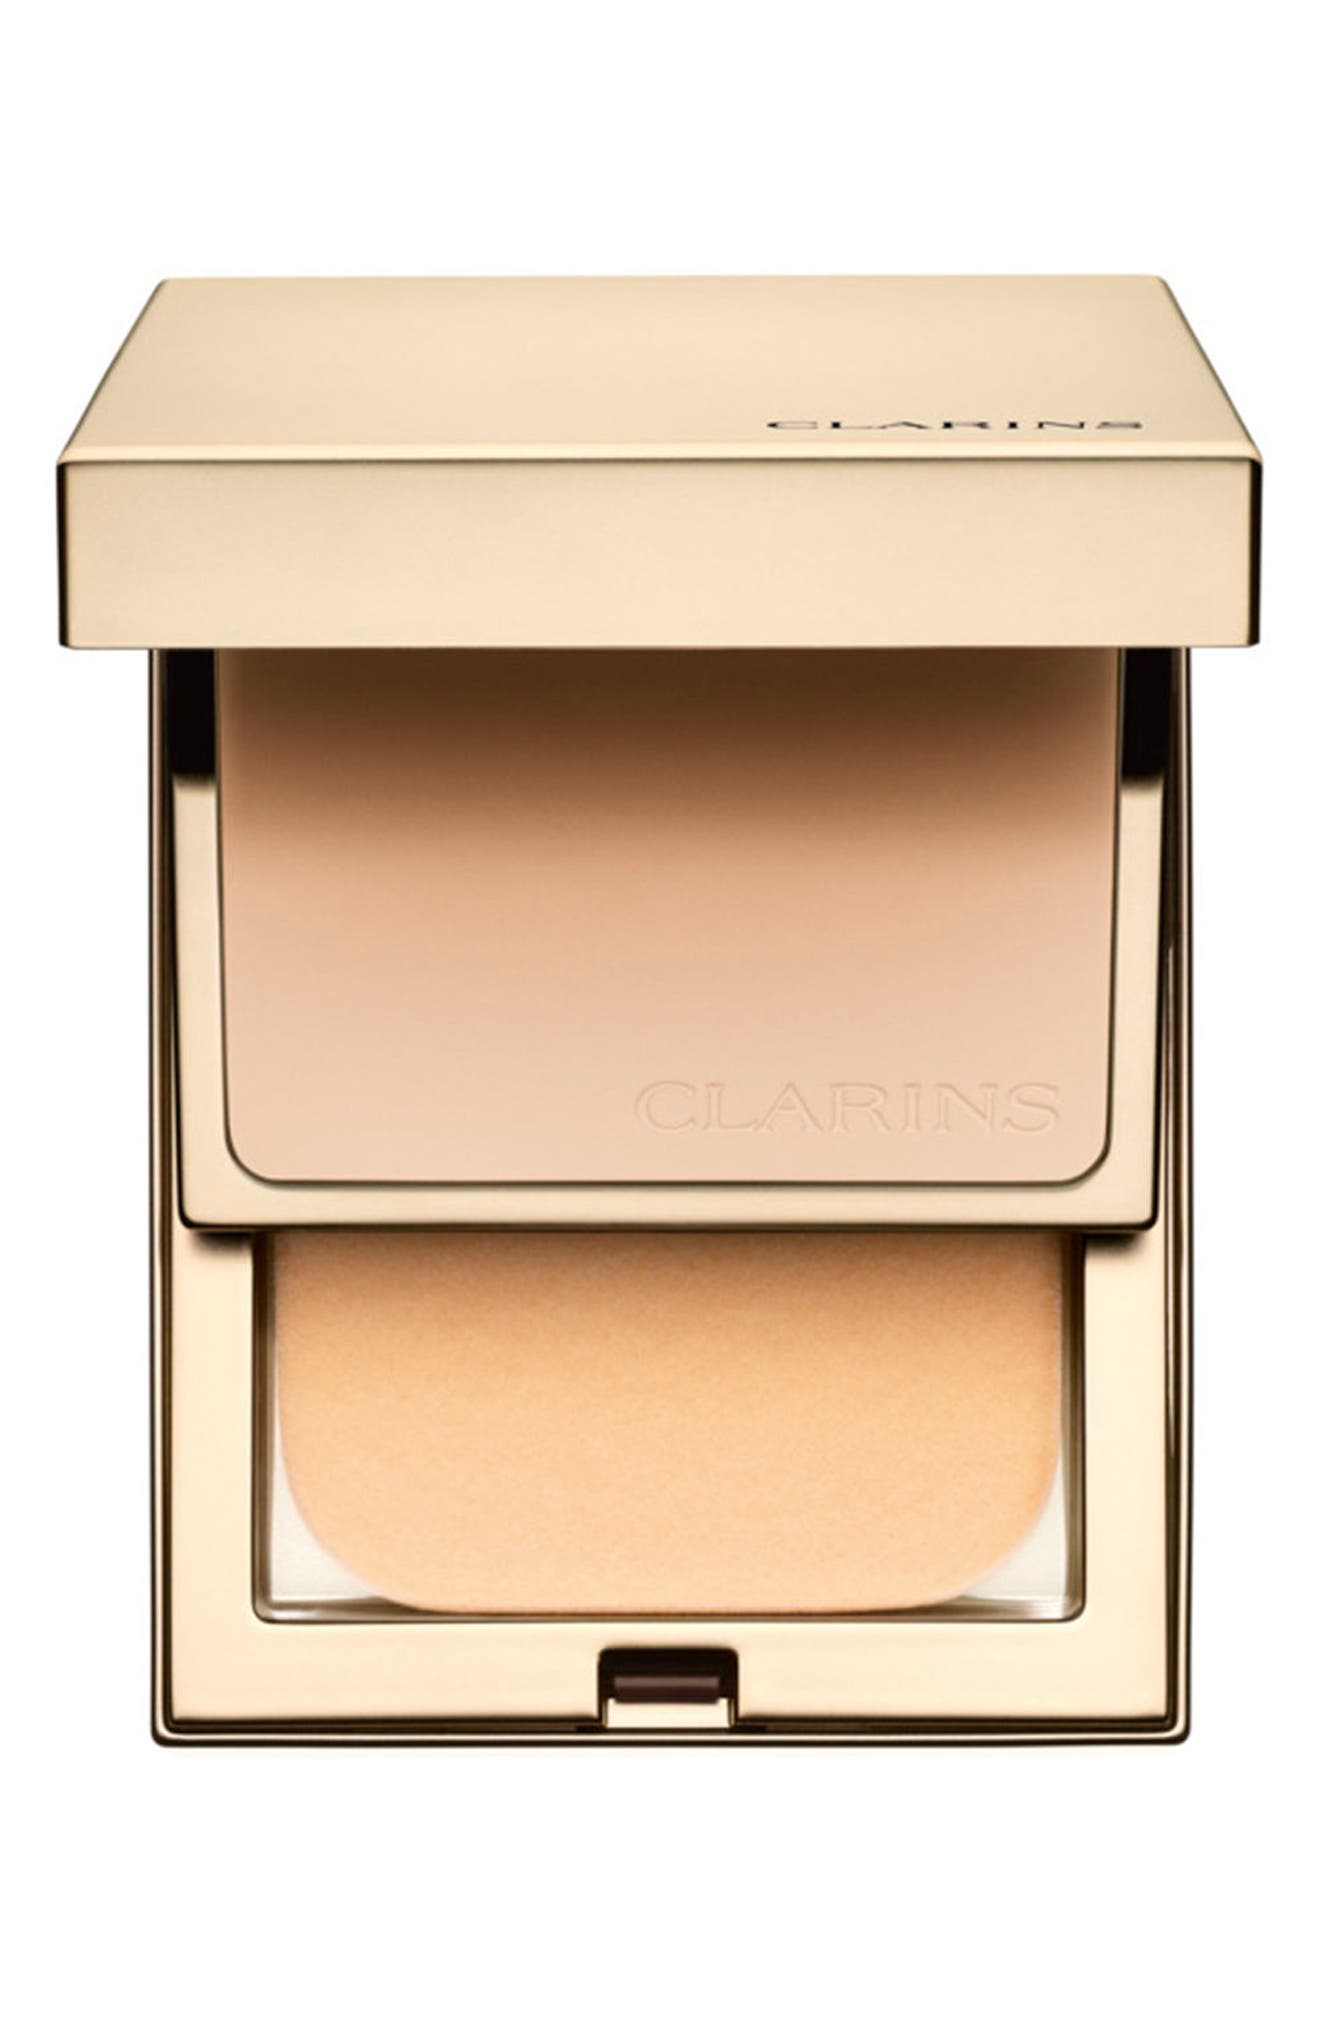 Everlasting Compact Foundation SPF 9,                             Main thumbnail 1, color,                             103 IVORY